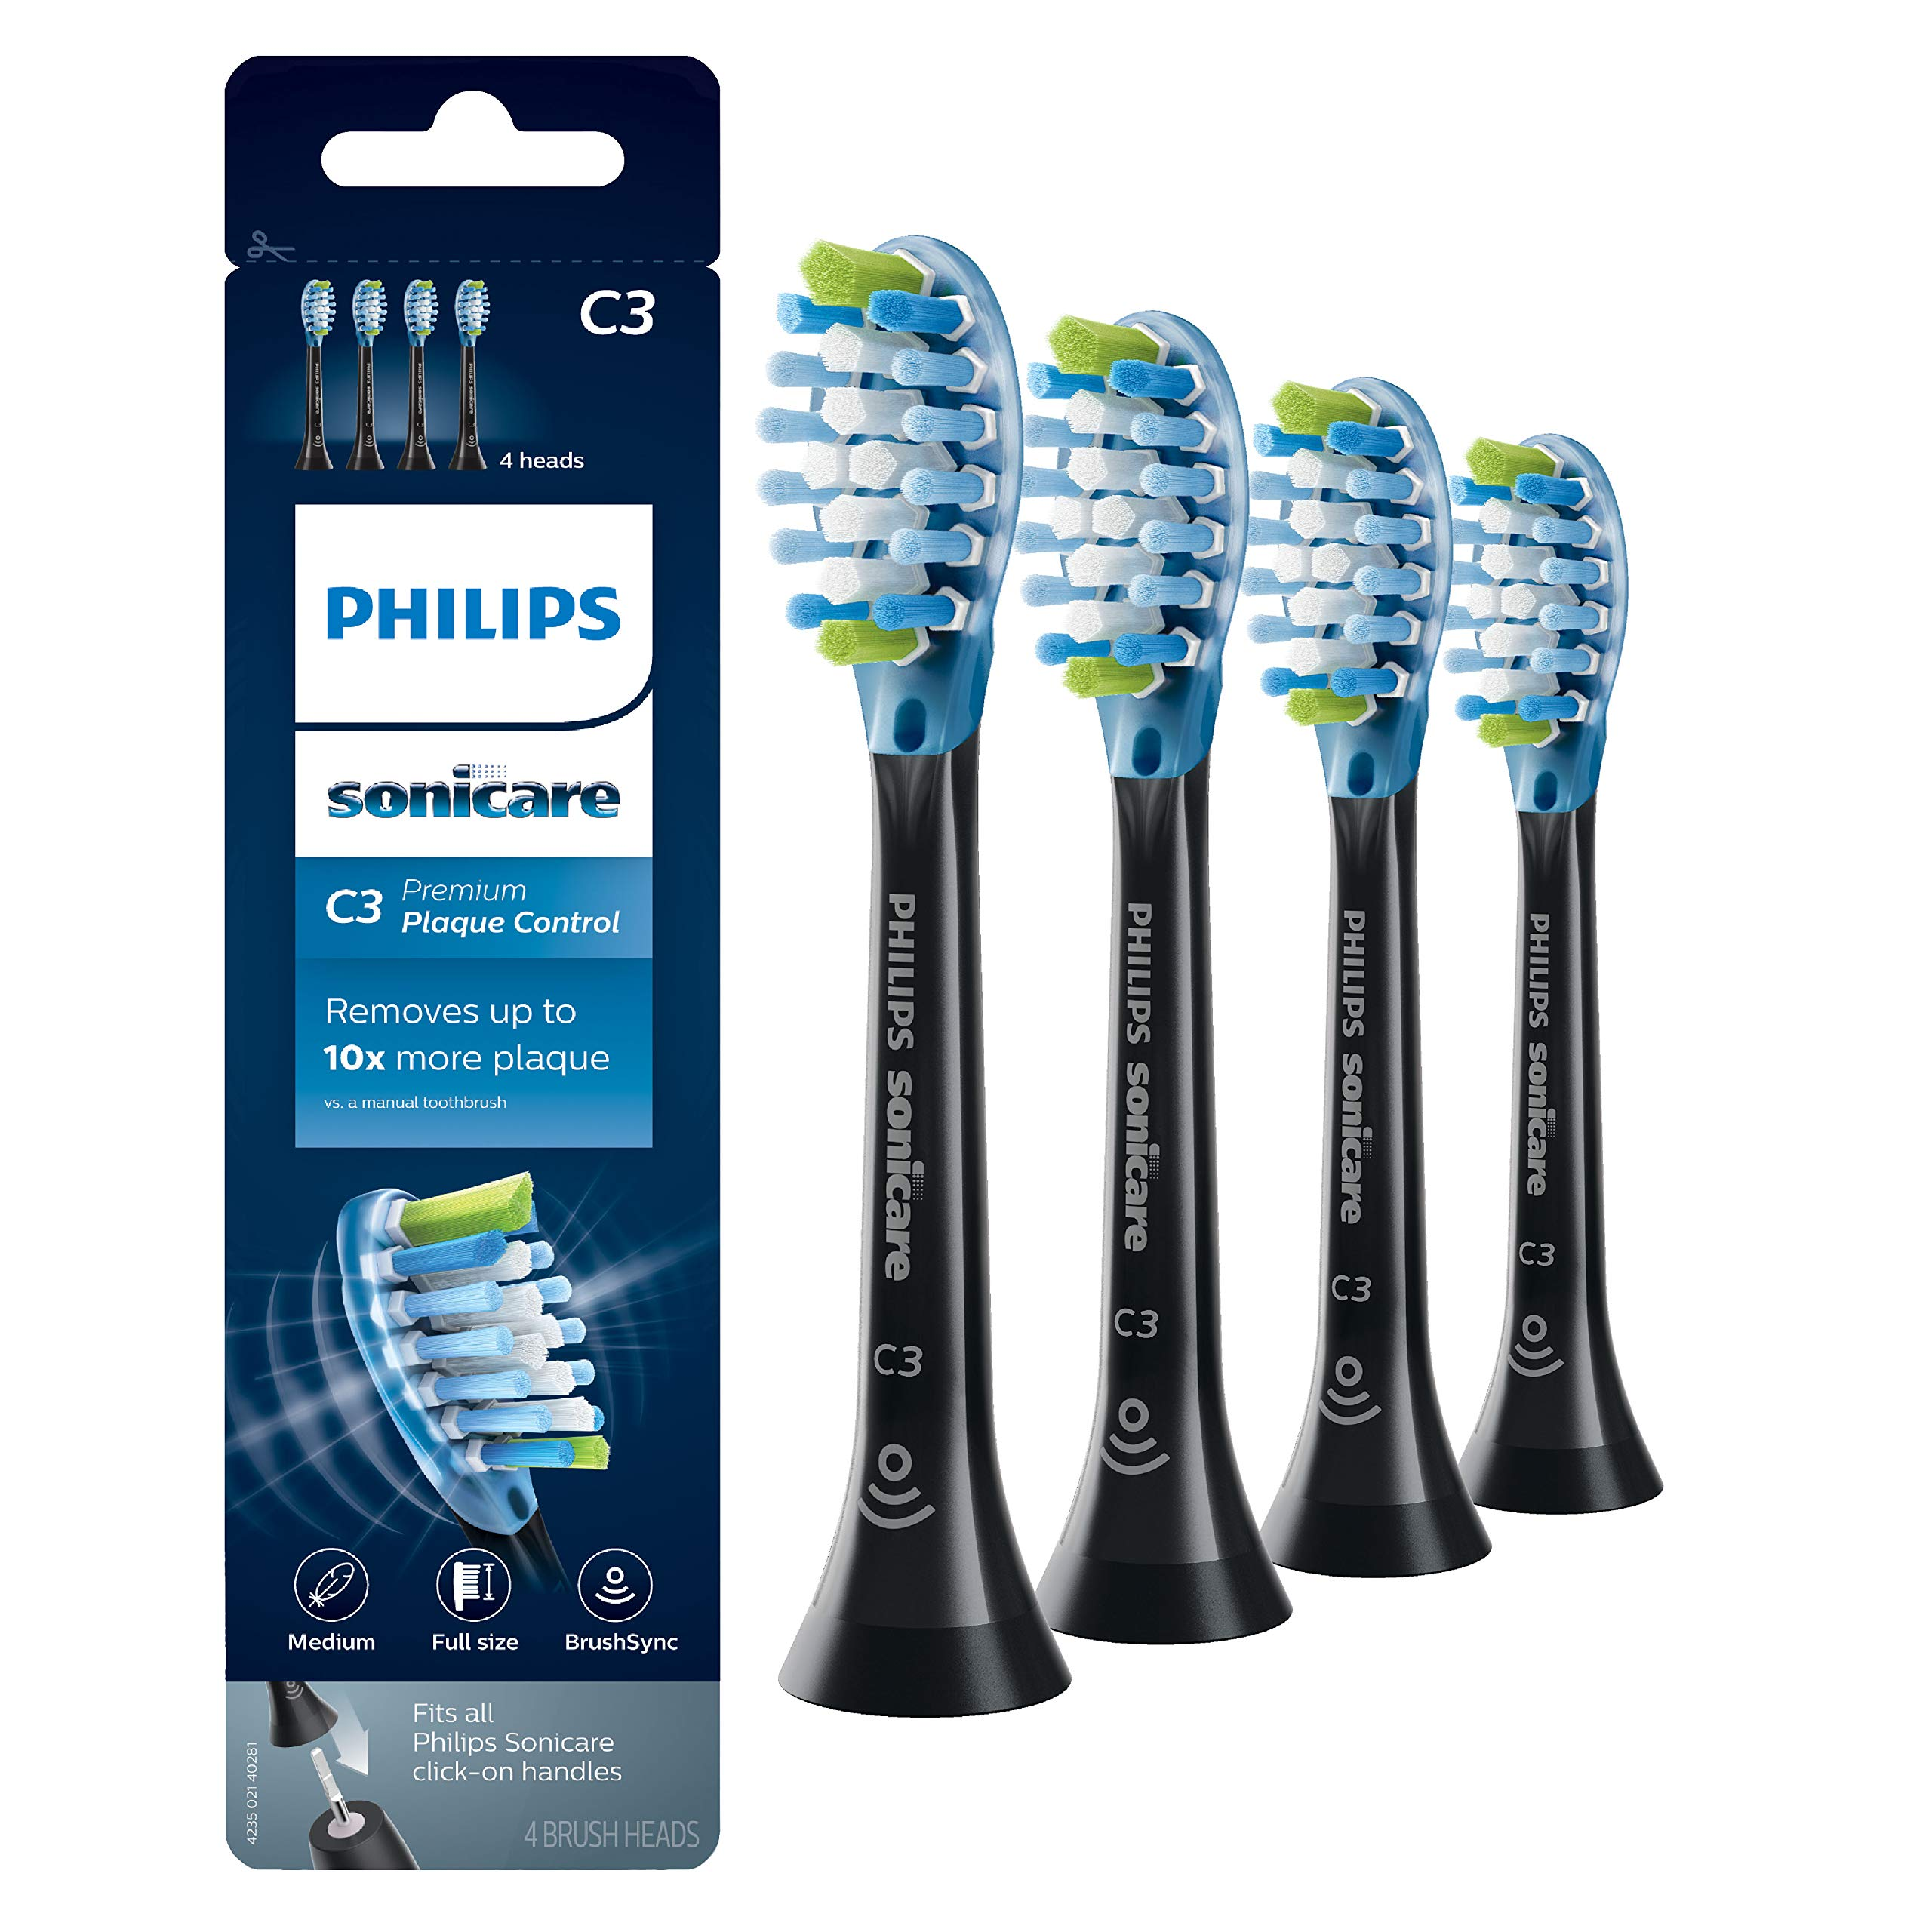 Philips Sonicare Premium Plaque Control replacement toothbrush heads, HX9044/95, BrushSync technology, Black 4-pk